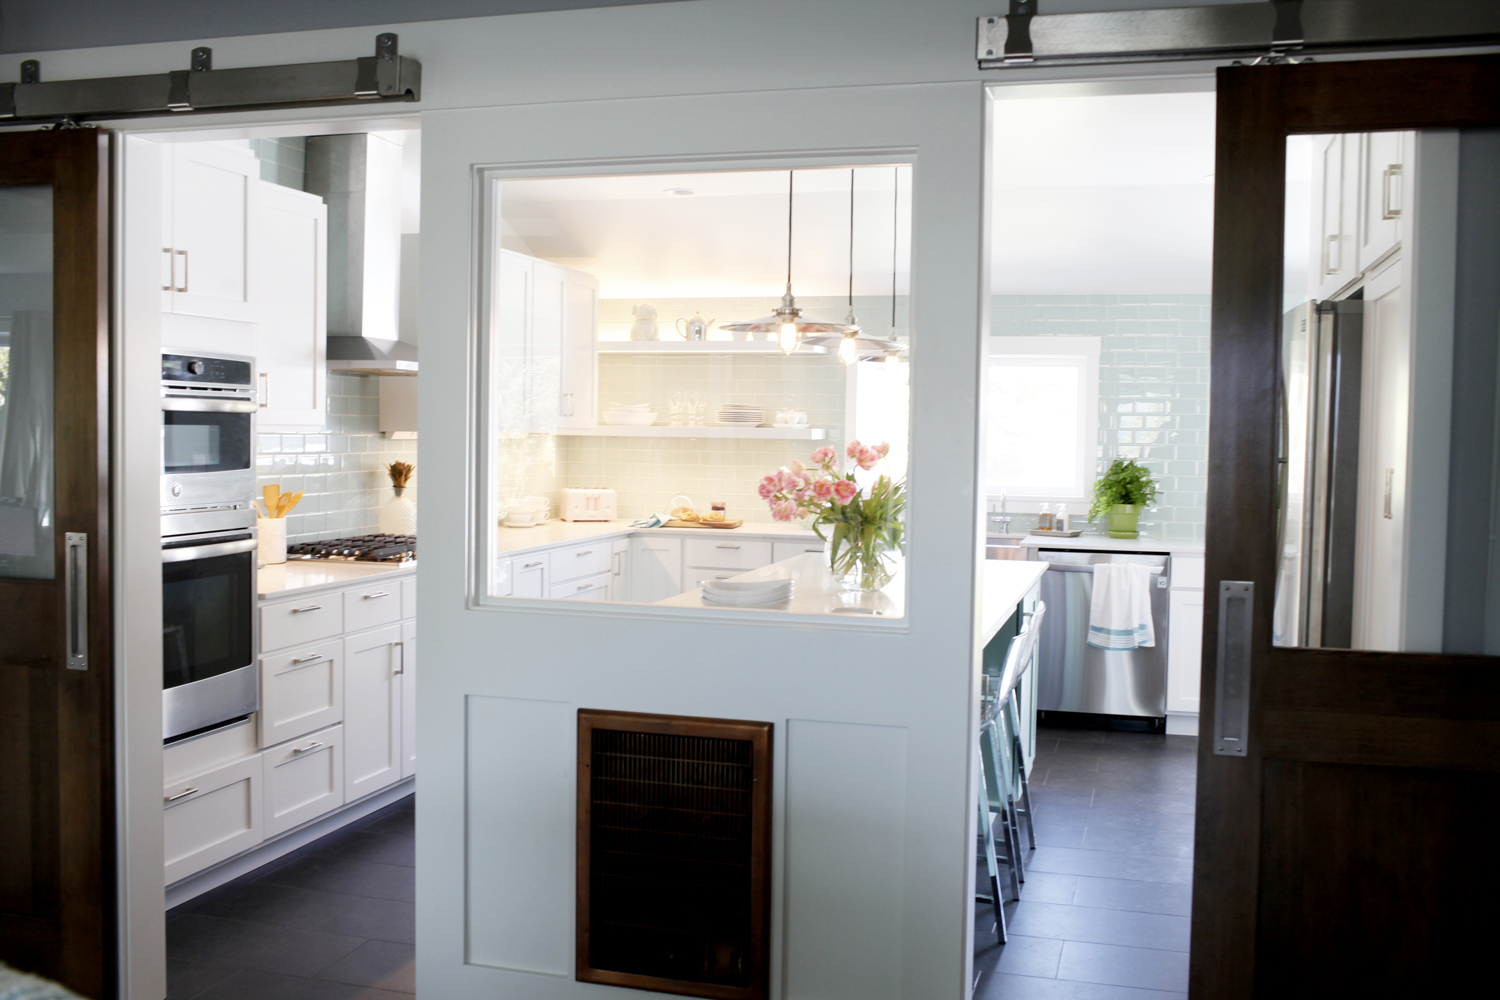 Interior Design: The Farm Kitchen